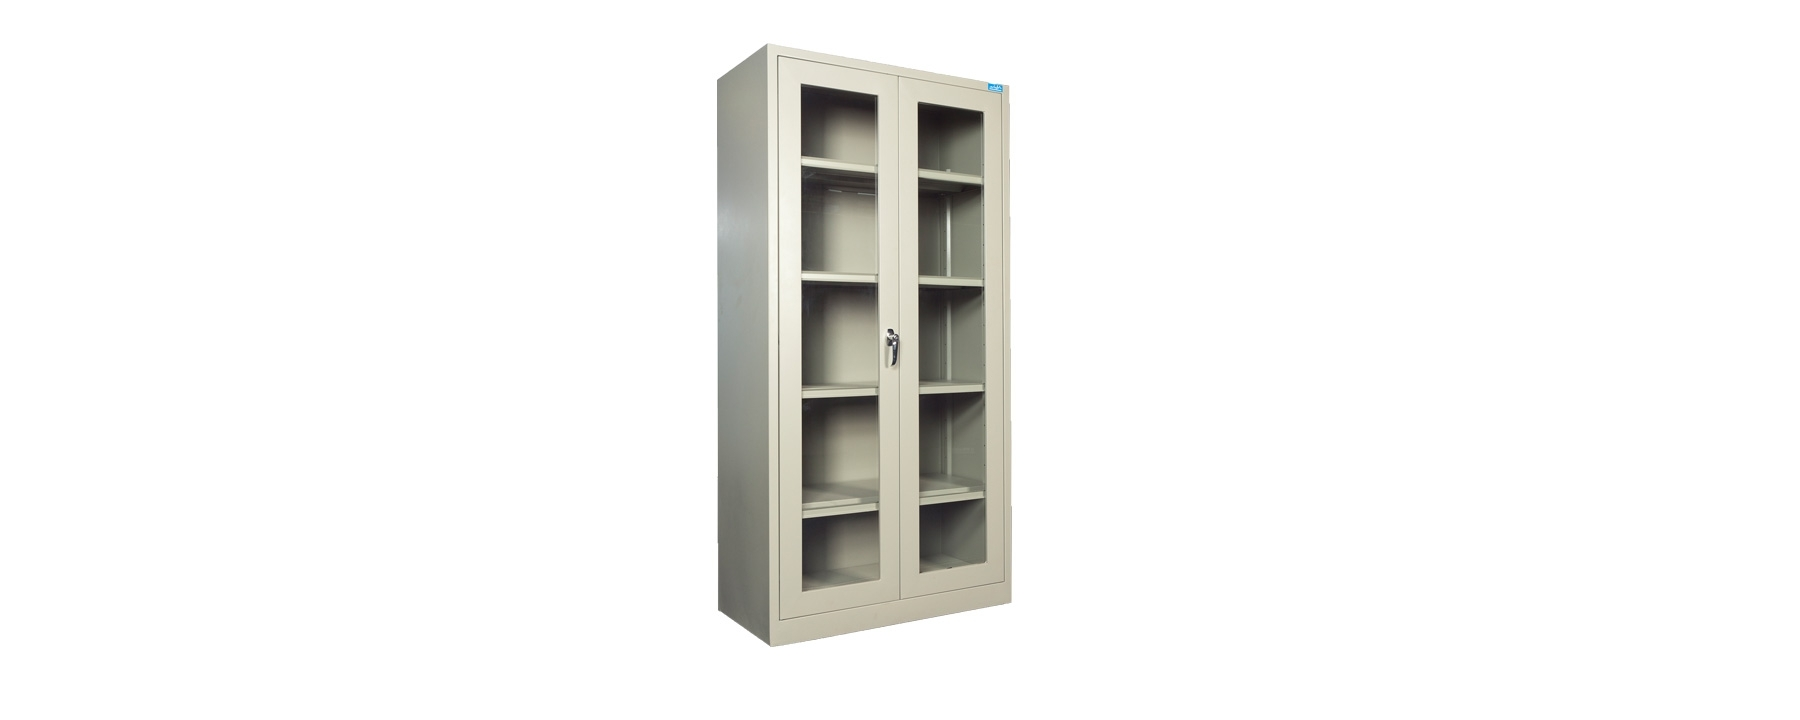 Best Home And Office Furniture Regarding Library Cupboards (View 8 of 15)